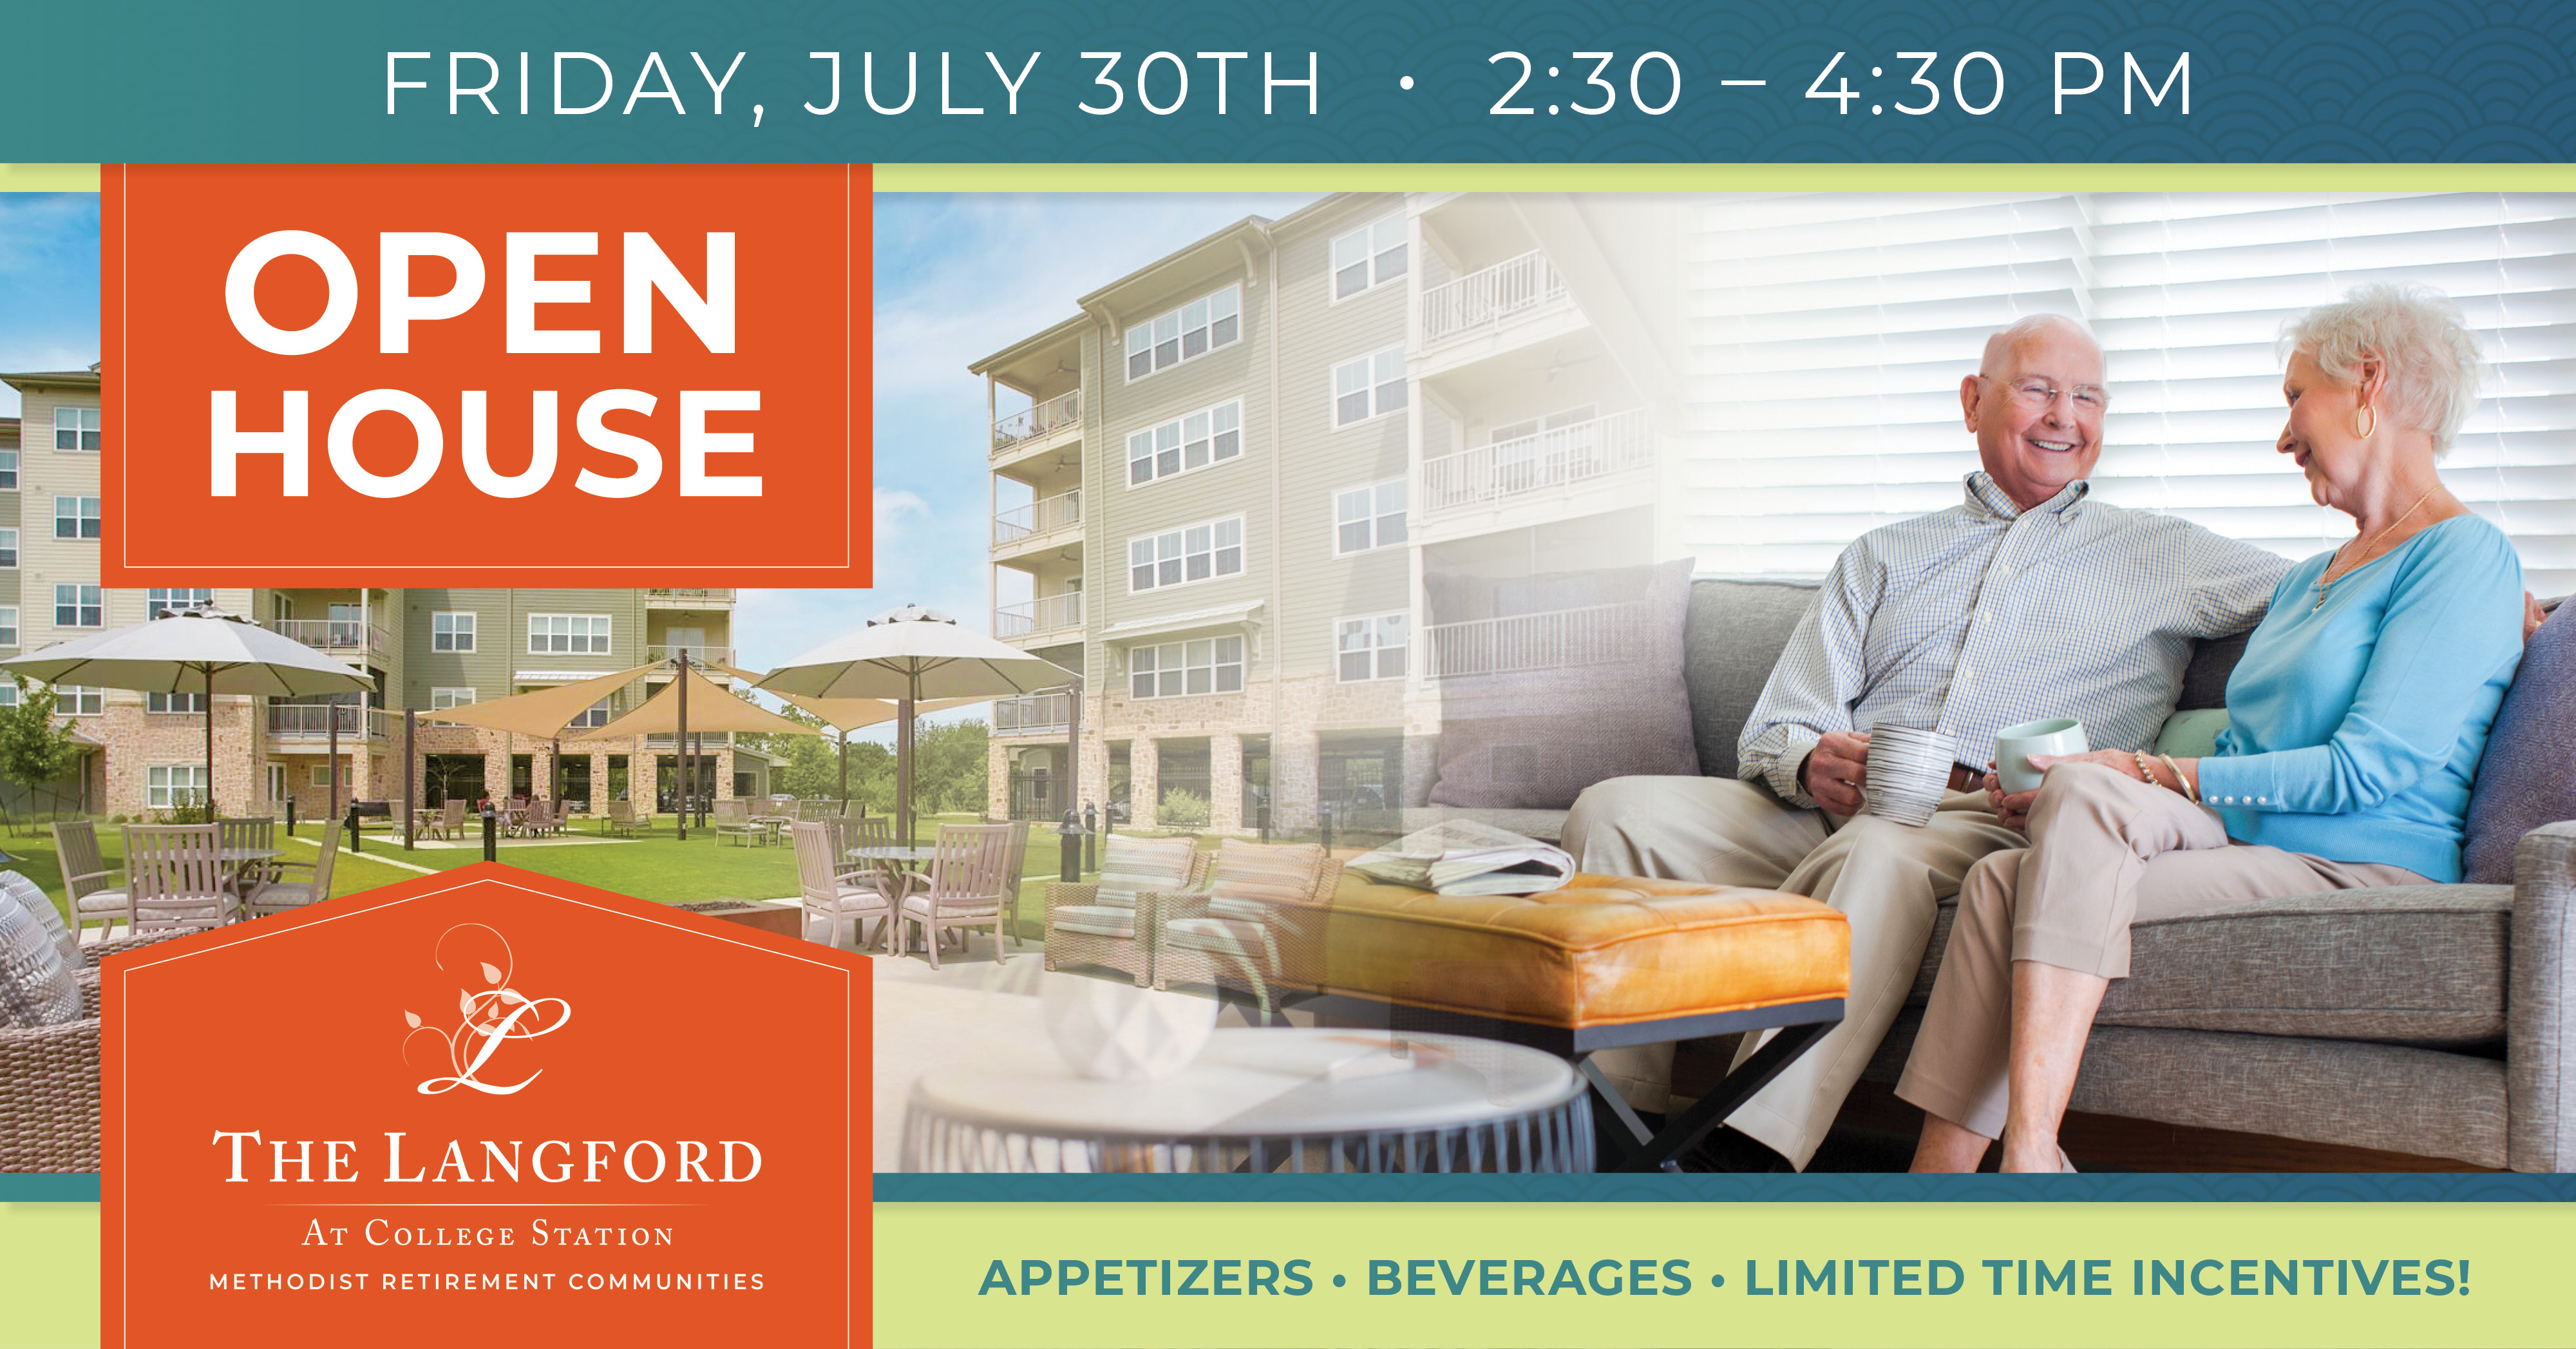 The Langford OPEN HOUSE!